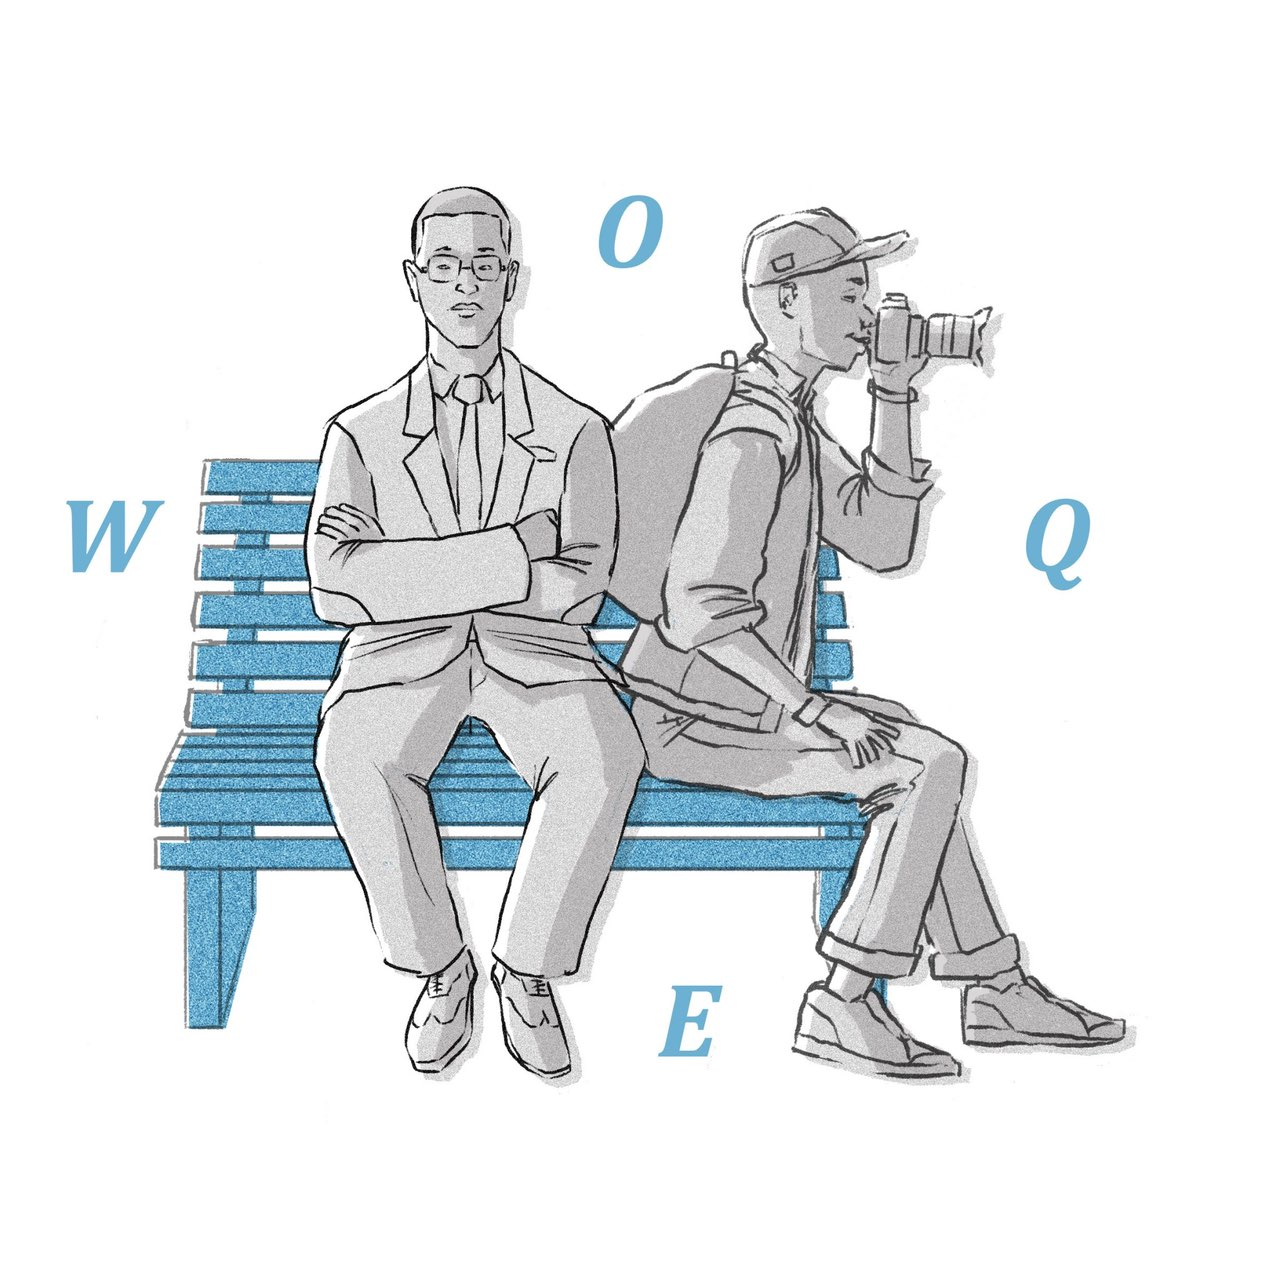 Two people sit on a bench, one in a suit with arms crossed and the other wearing a backpack while looking through a camera. The letters WOQE surround them.